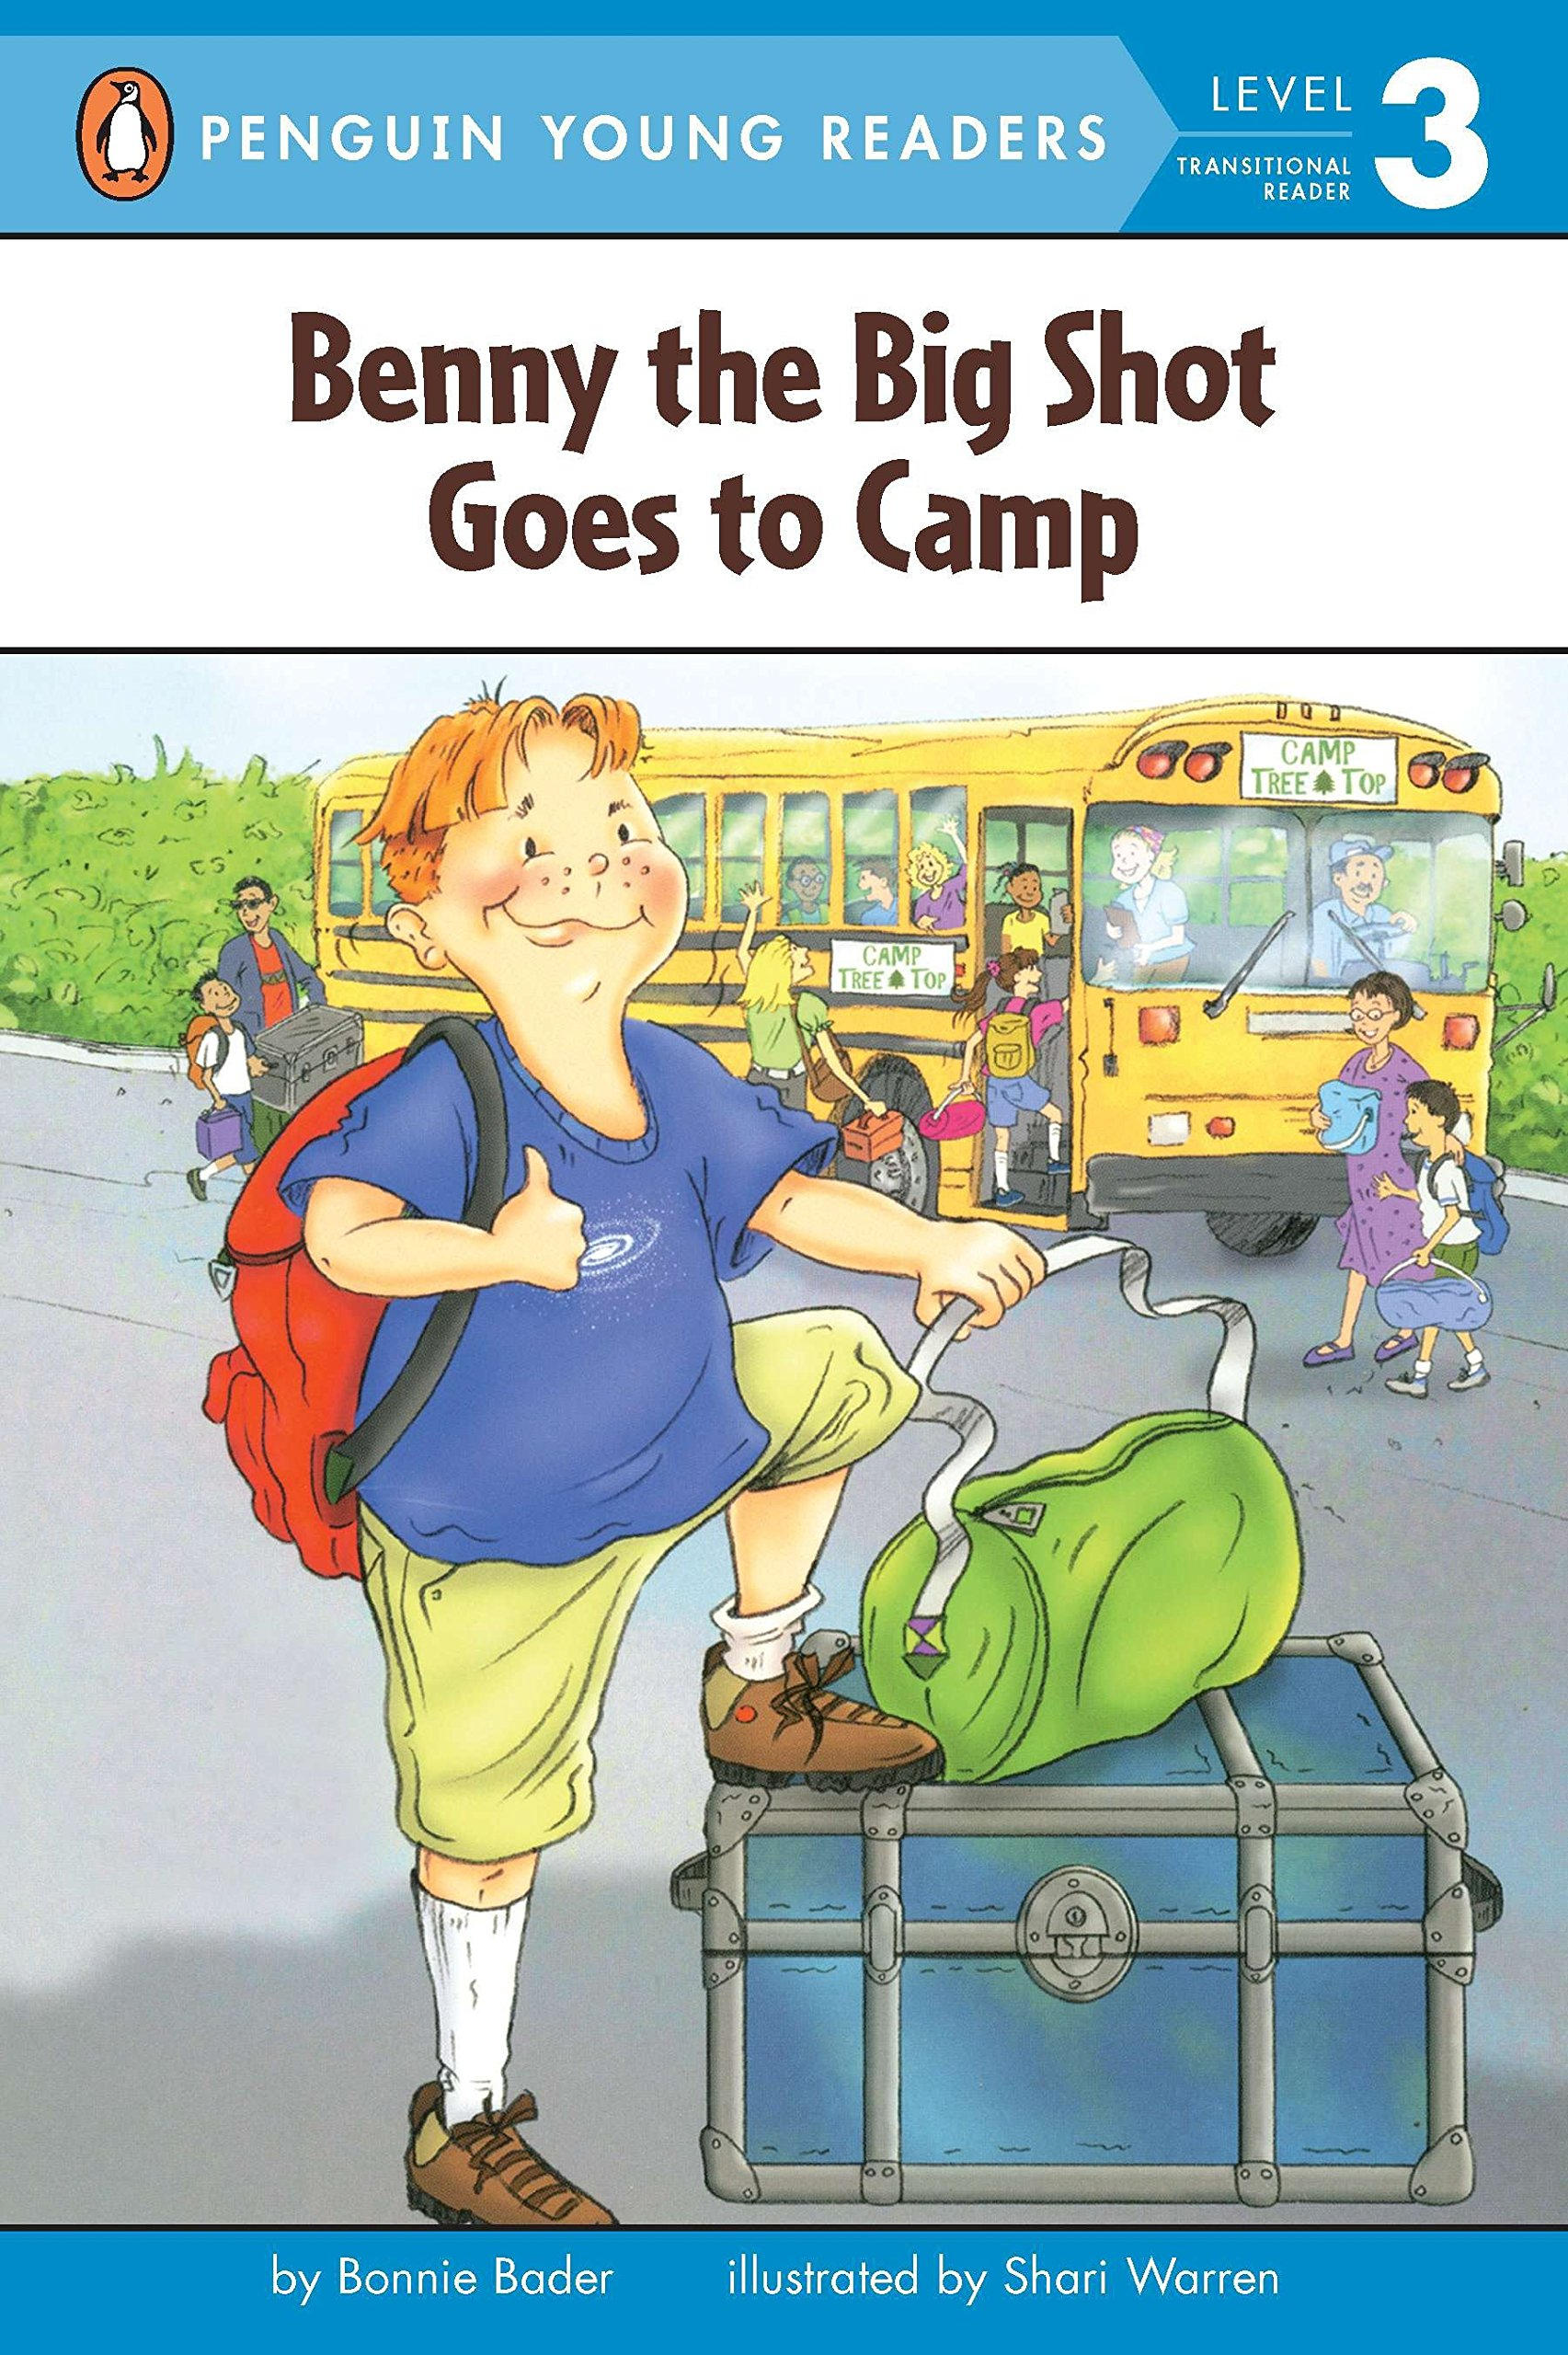 Amazon.com: Benny the Big Shot Goes to Camp (Penguin Young Readers, Level 3)  (9780448428949): Bonnie Bader, Shari Warren: Books